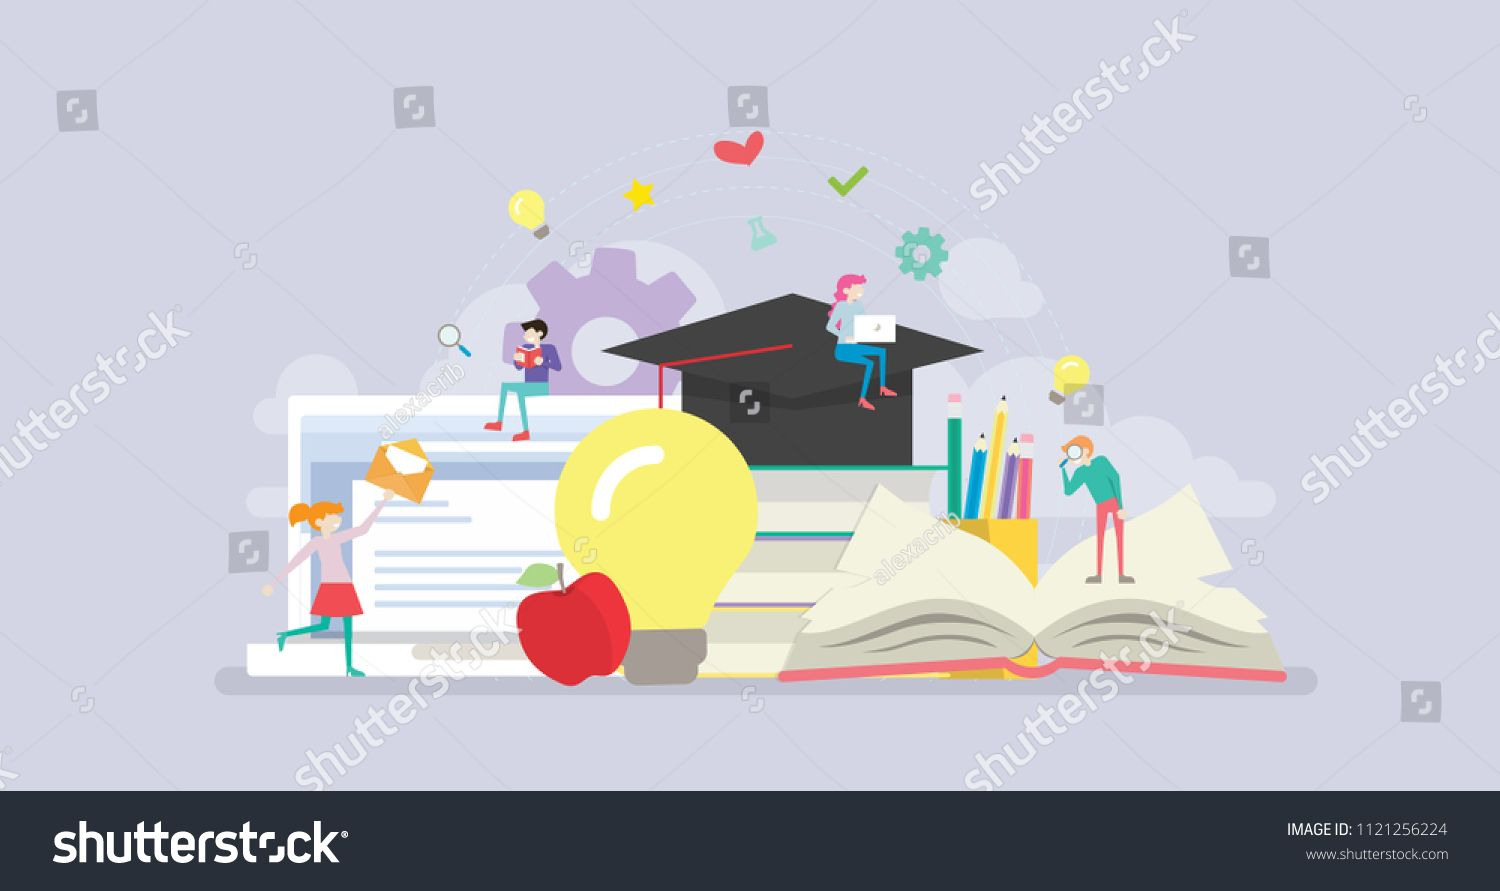 Online Distance Learning Education Tiny People Character Concept Vector Illustration Suitable Character Concept Distance Learning Education Book Illustration